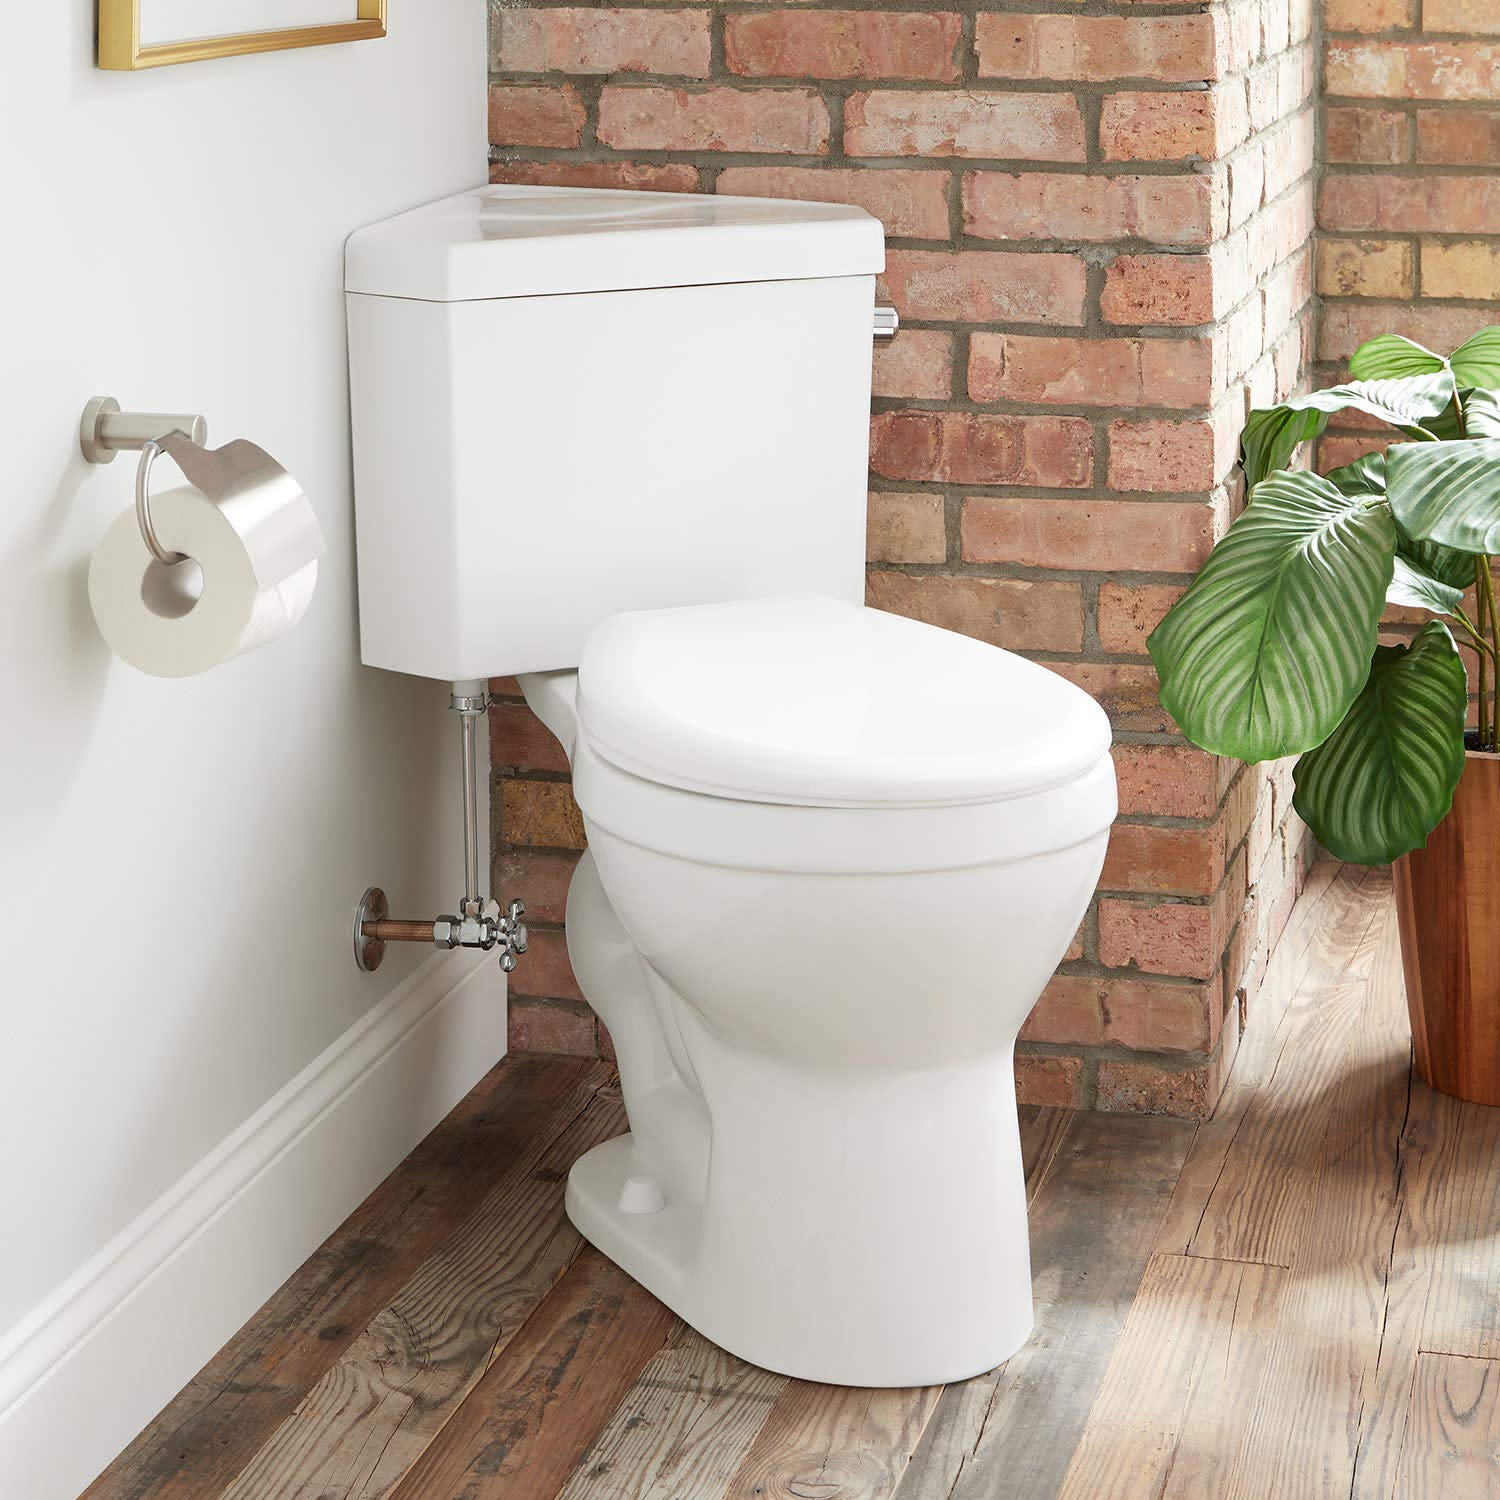 Signature Hardware 443130 Braeburn 1.28 GPF Two Piece Round Chair Height Toilet - Standard Seat Included by Signature Hardware